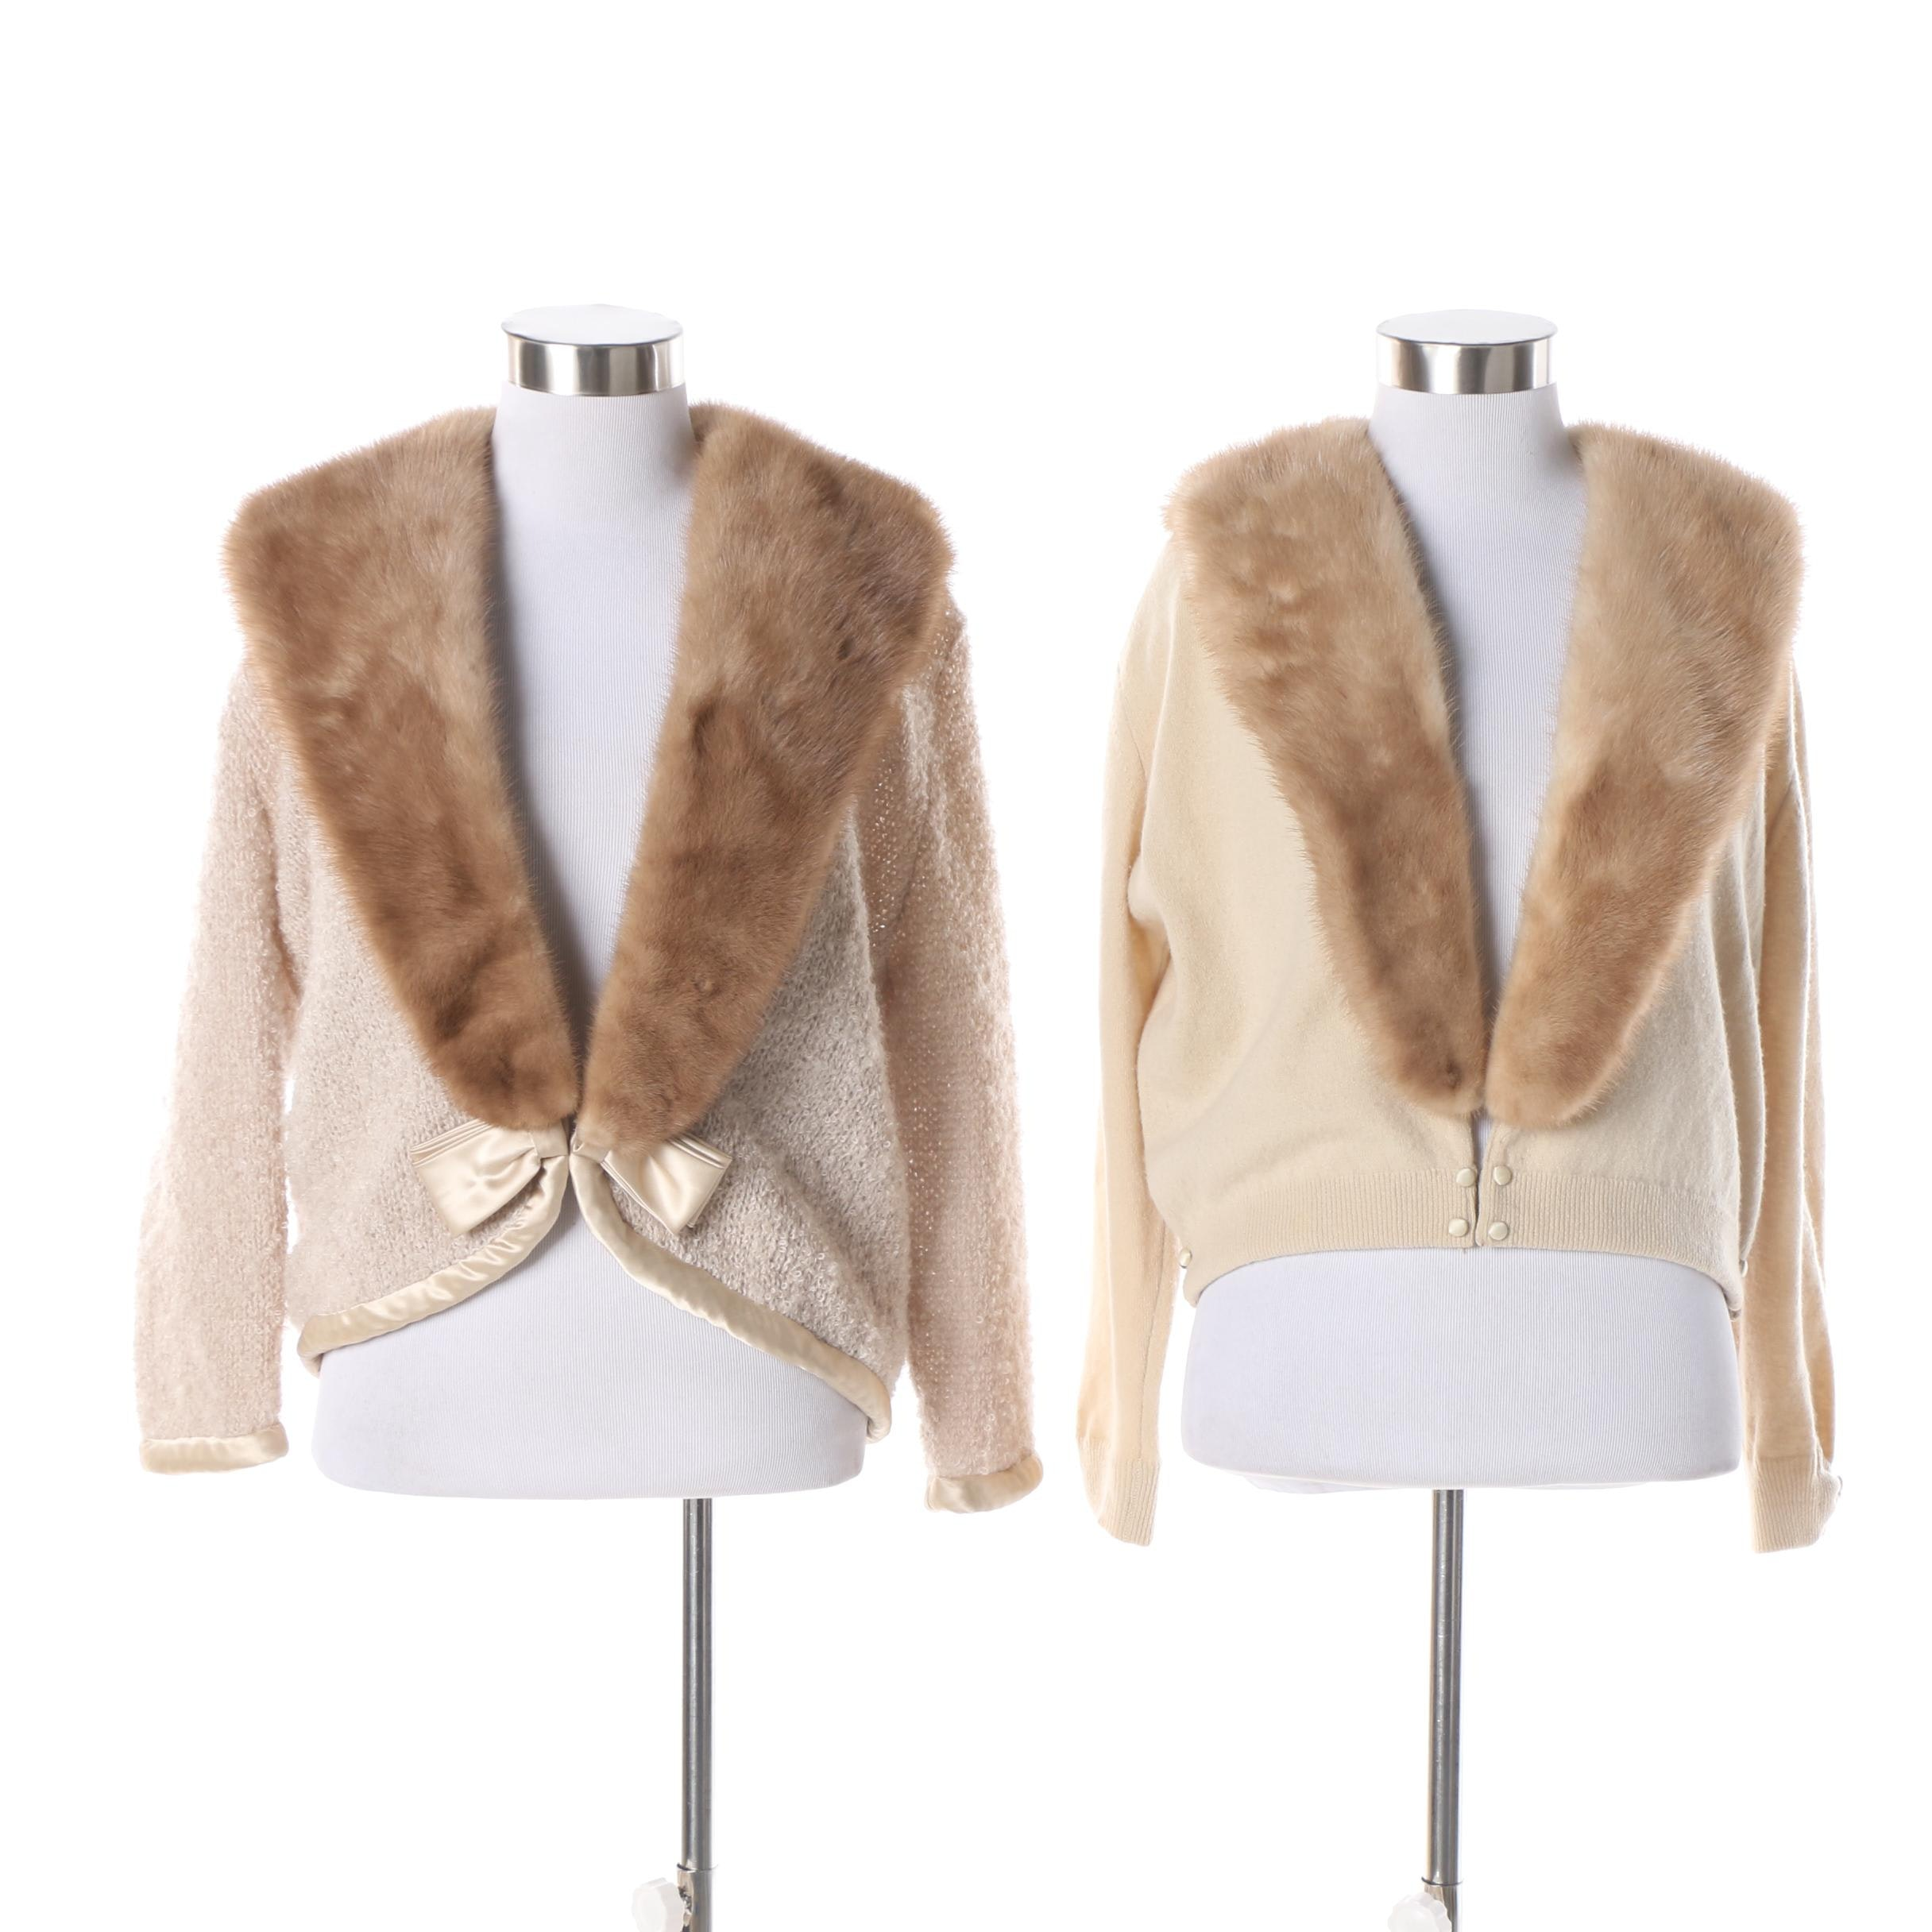 Vintage Cardigan Sweaters with Mink Fur Collars featuring Marshall Fields & Co.